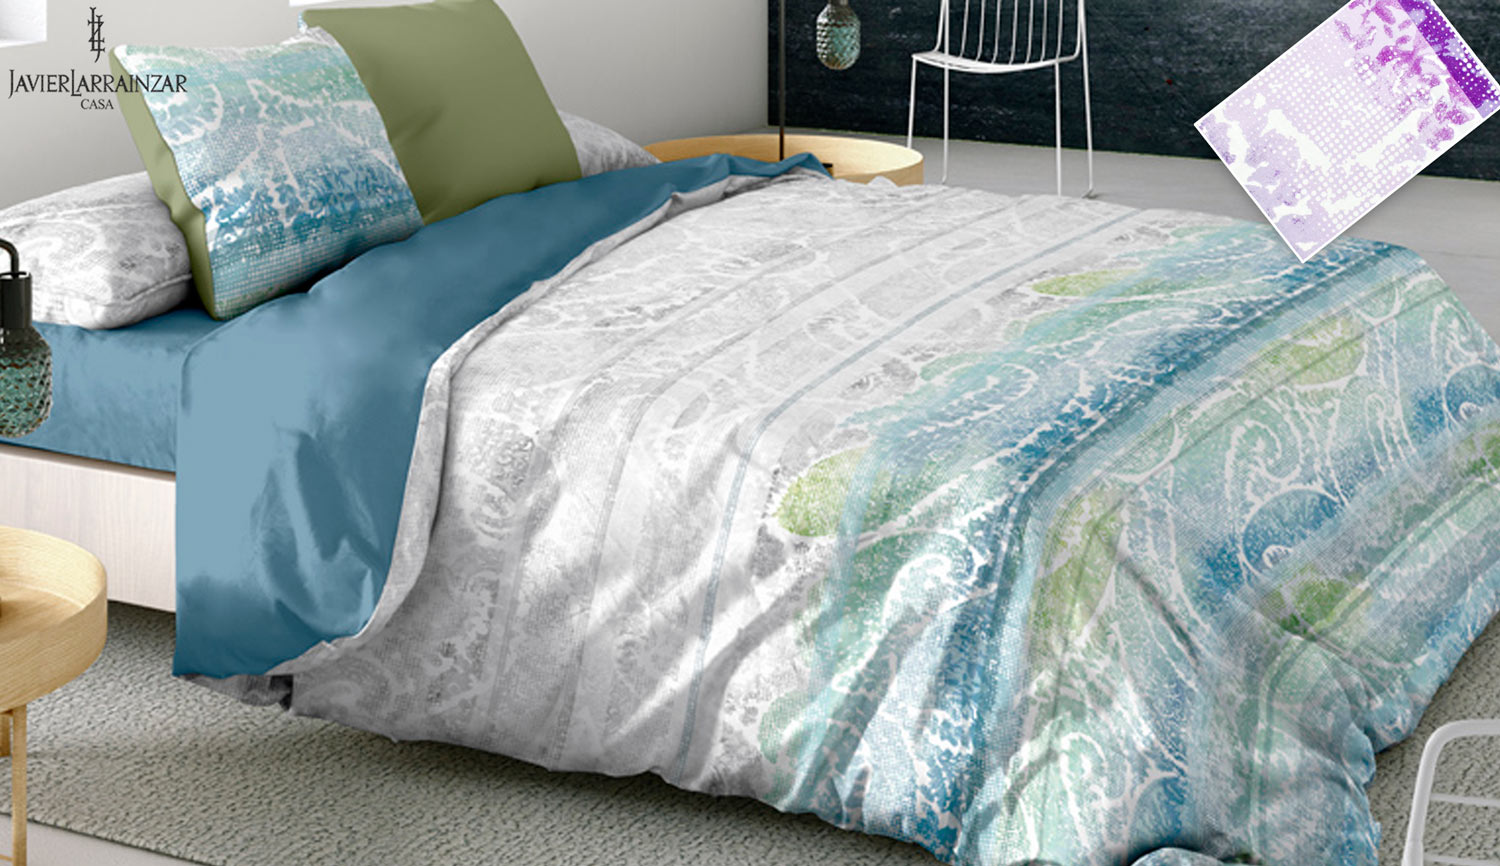 Duvet cover set 3 pieces - Kashmir - Javier Larrainzar